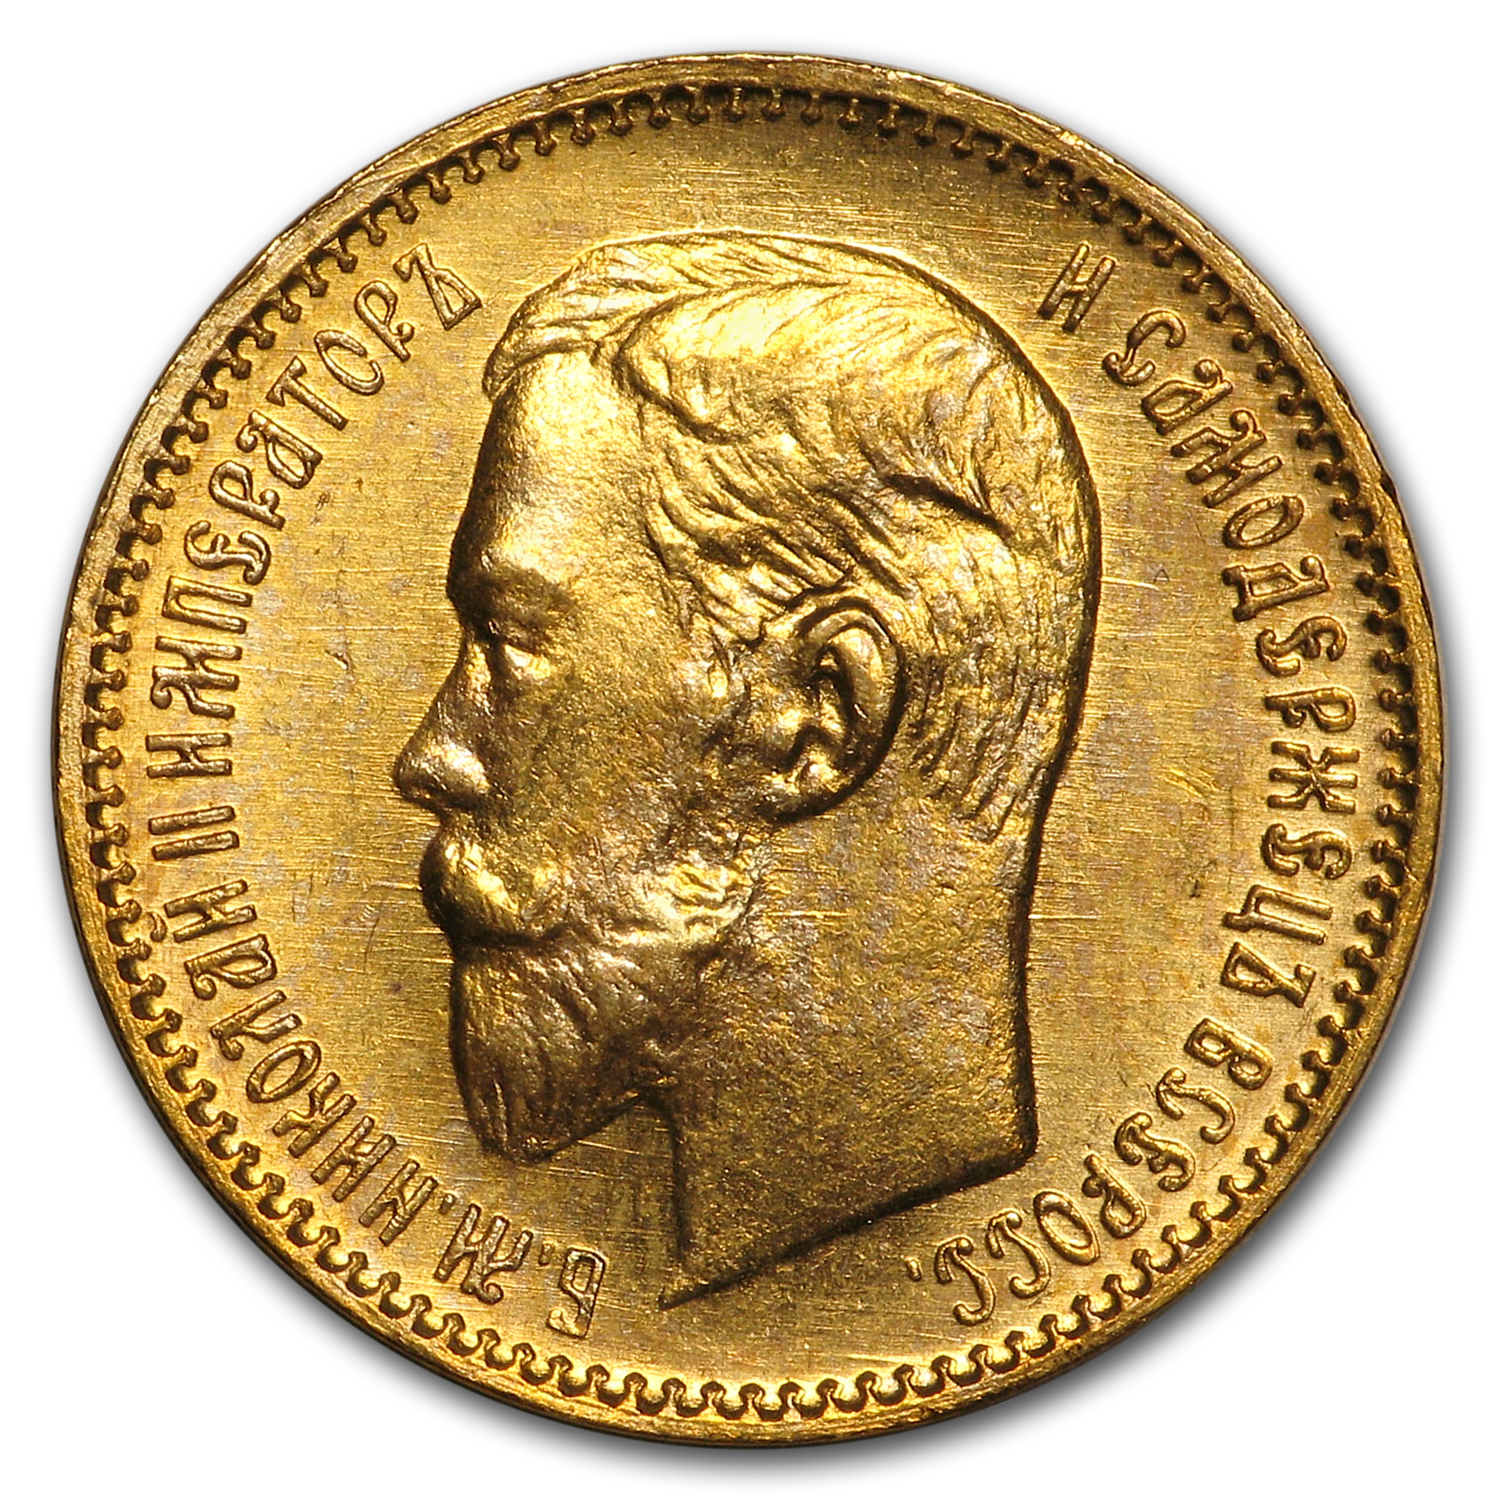 Russia 1904 Gold 5 Roubles - (Brilliant Uncirculated)